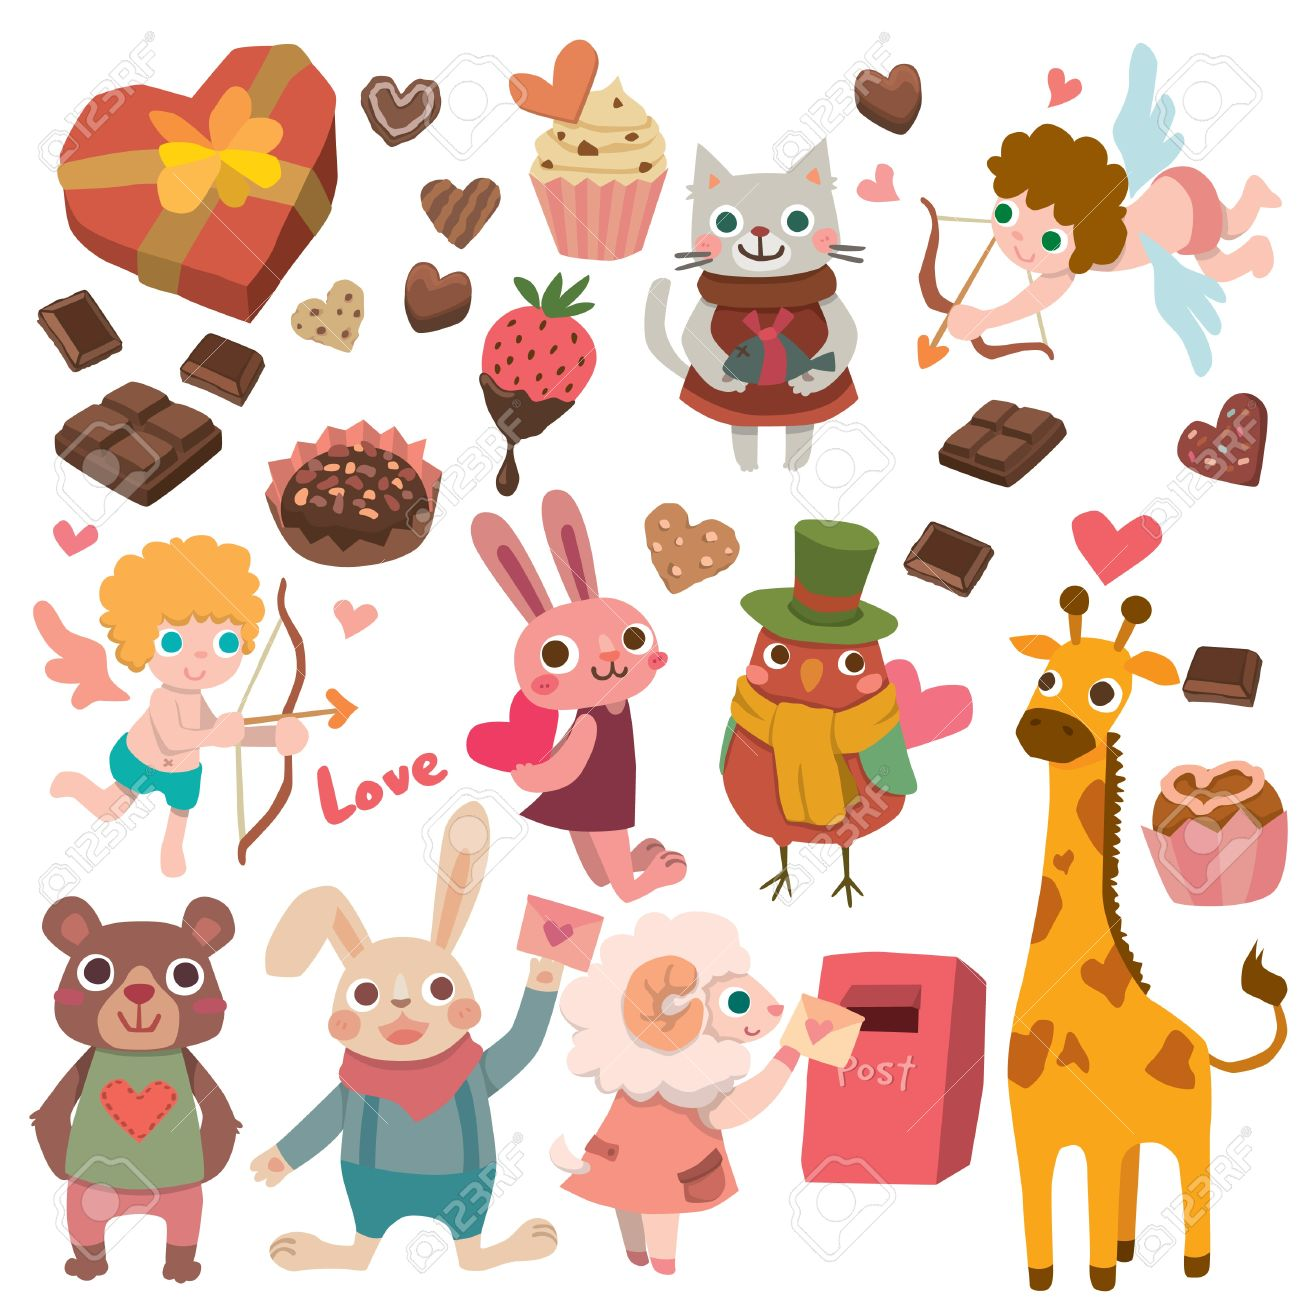 Cute animal valentine clipart jpg black and white download Valentines With Cute Animals Royalty Free Cliparts, Vectors, And ... jpg black and white download